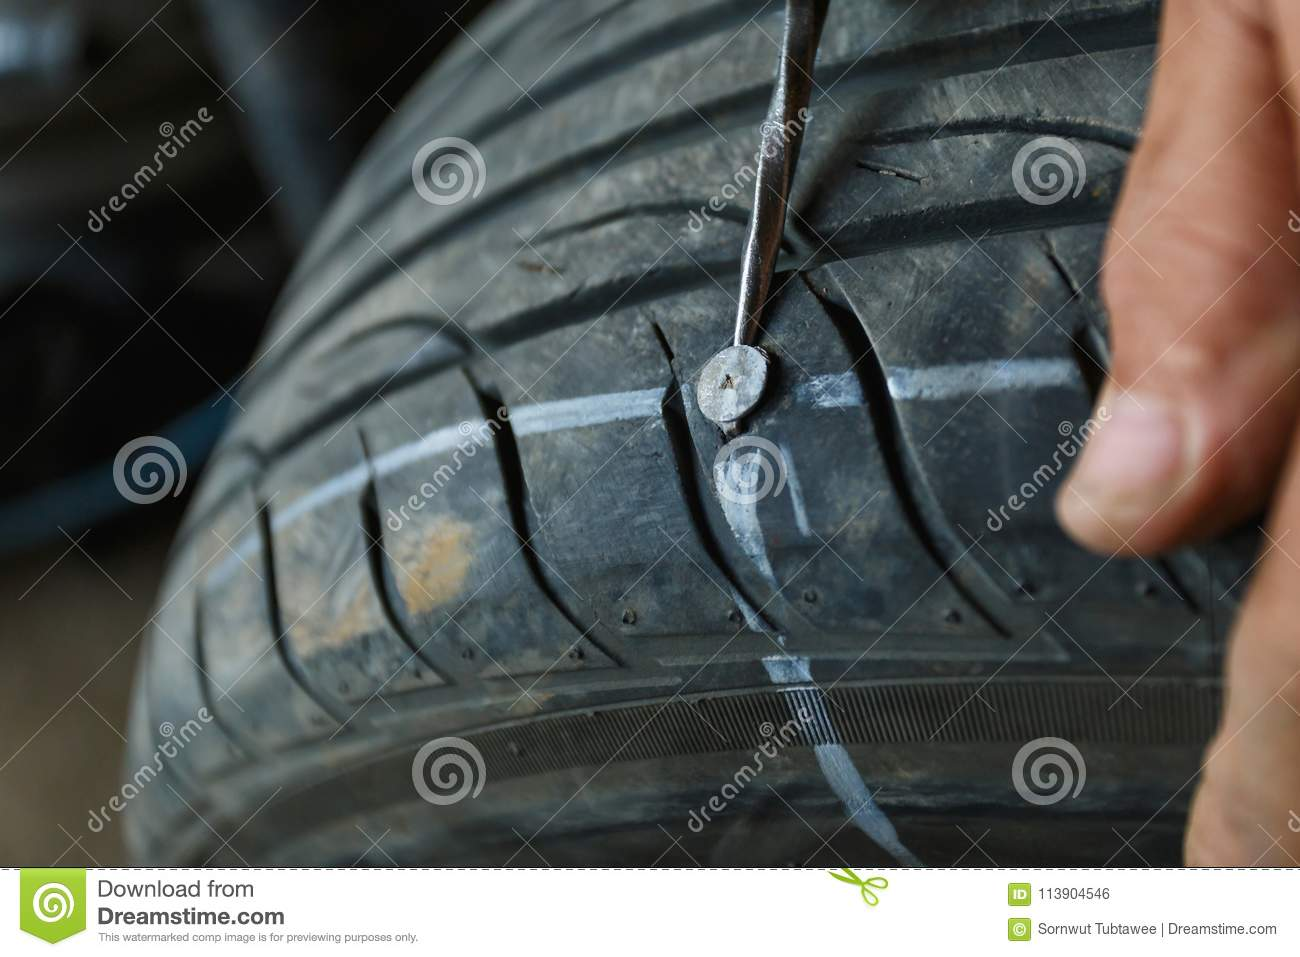 Accident with punctured tires concept.